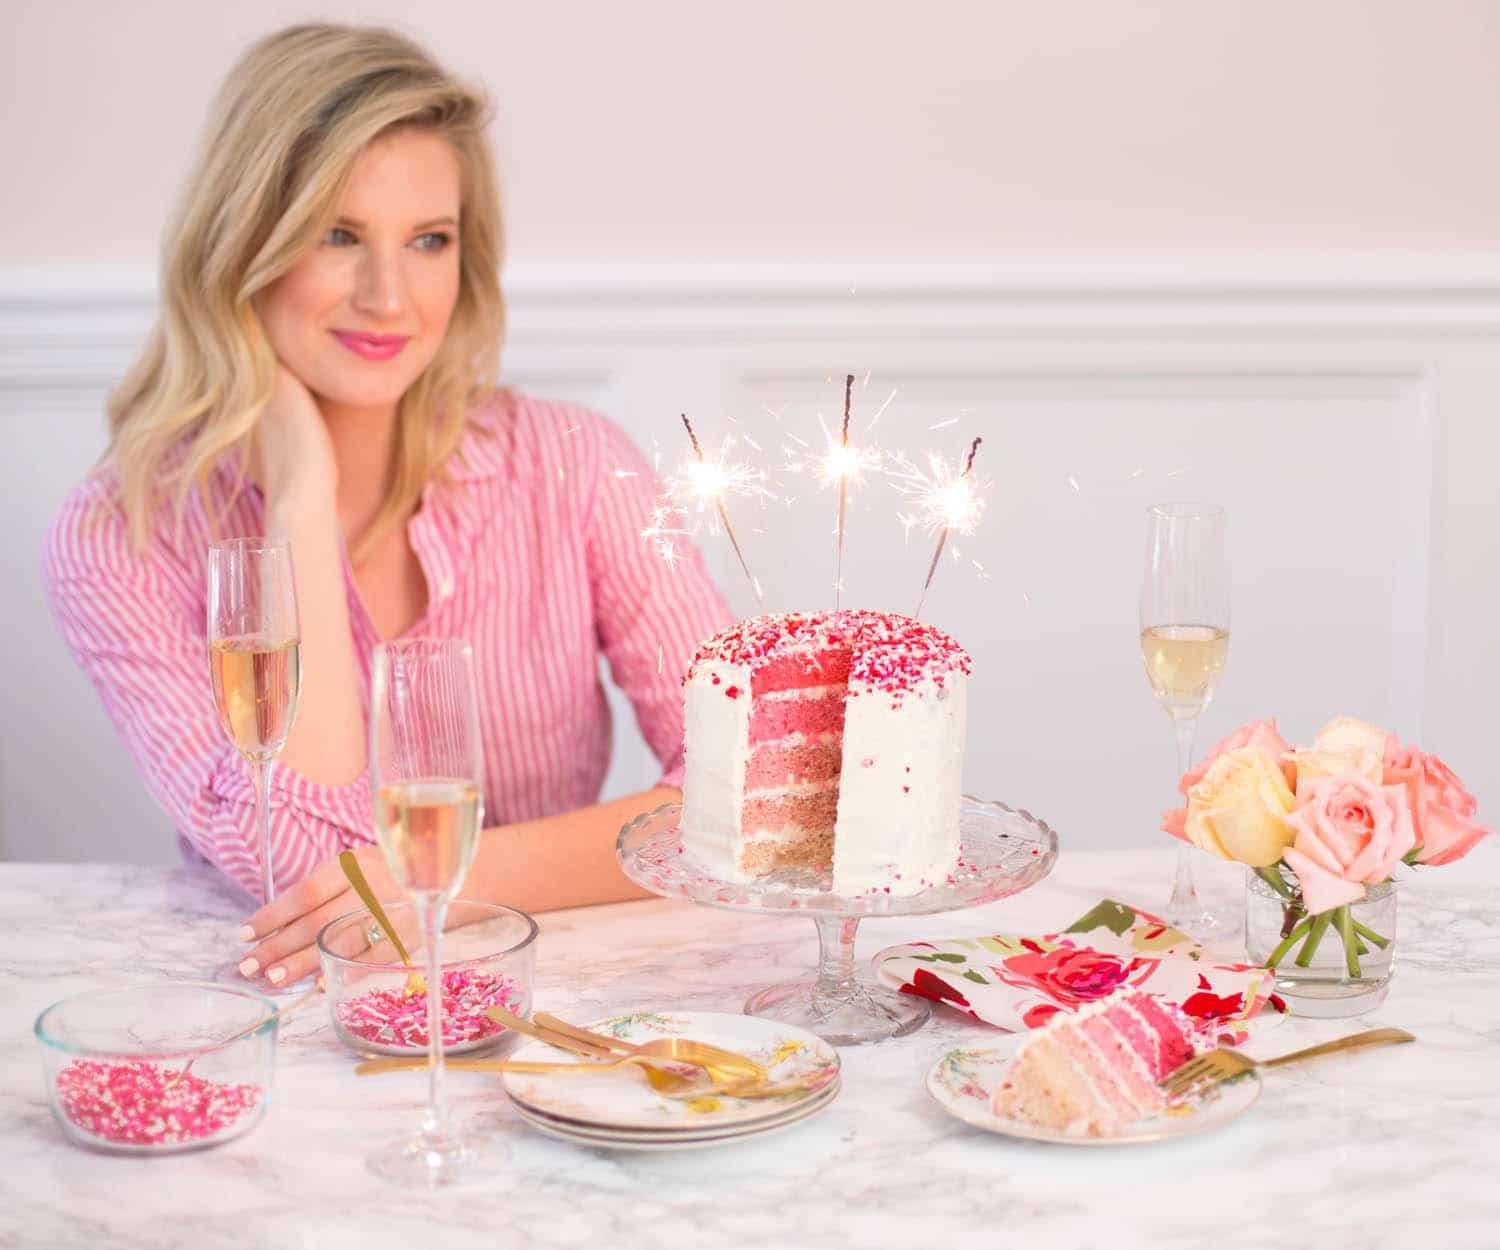 Blogger Ashley Brooke's DIY Heart Ombre Cake | www.ashleybrookedesigns.com